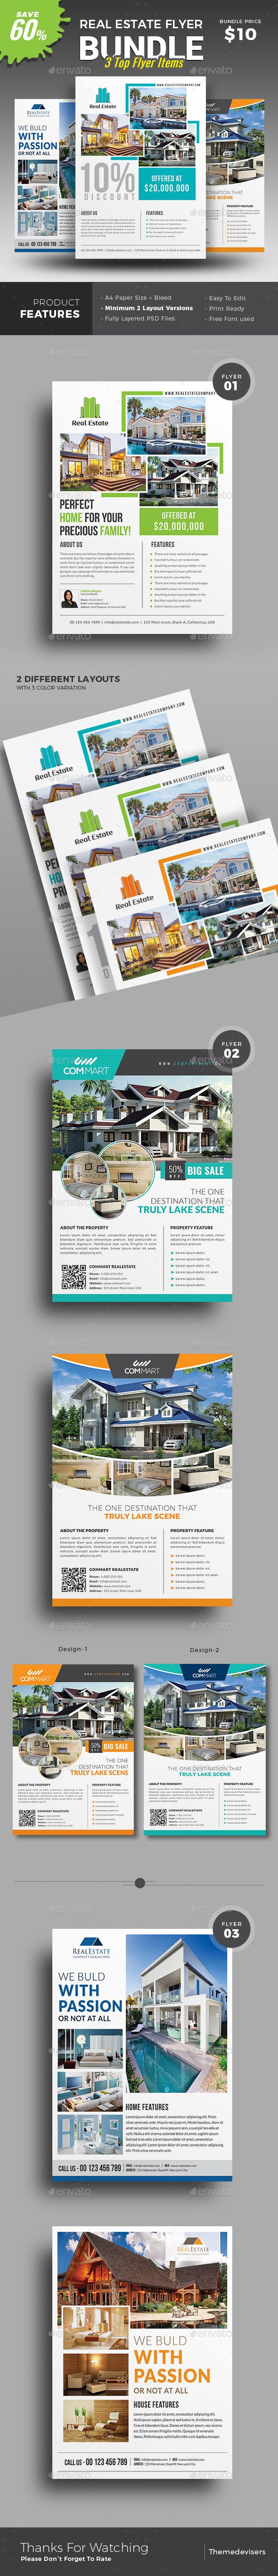 Real Estate Flyer | Real estate flyers, Flyer template and Template